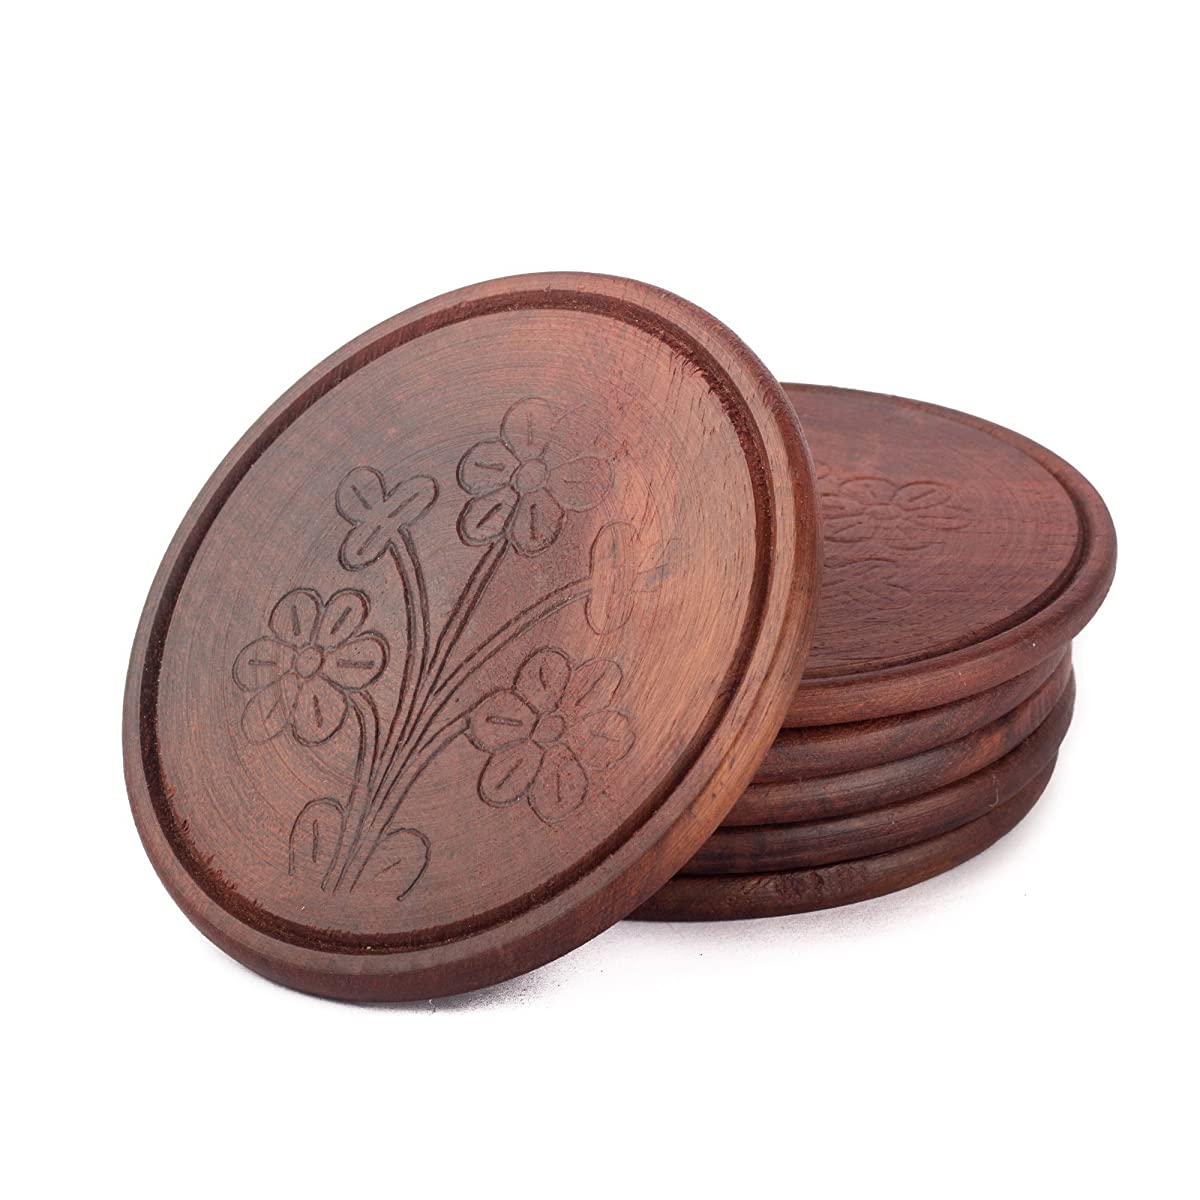 StarZebra SALE Handmade Retro Wood Coaster Set with 6 Round Table Coasters and Decorative Wooden Holder - Table Top Accessories & Housewarming Gifts